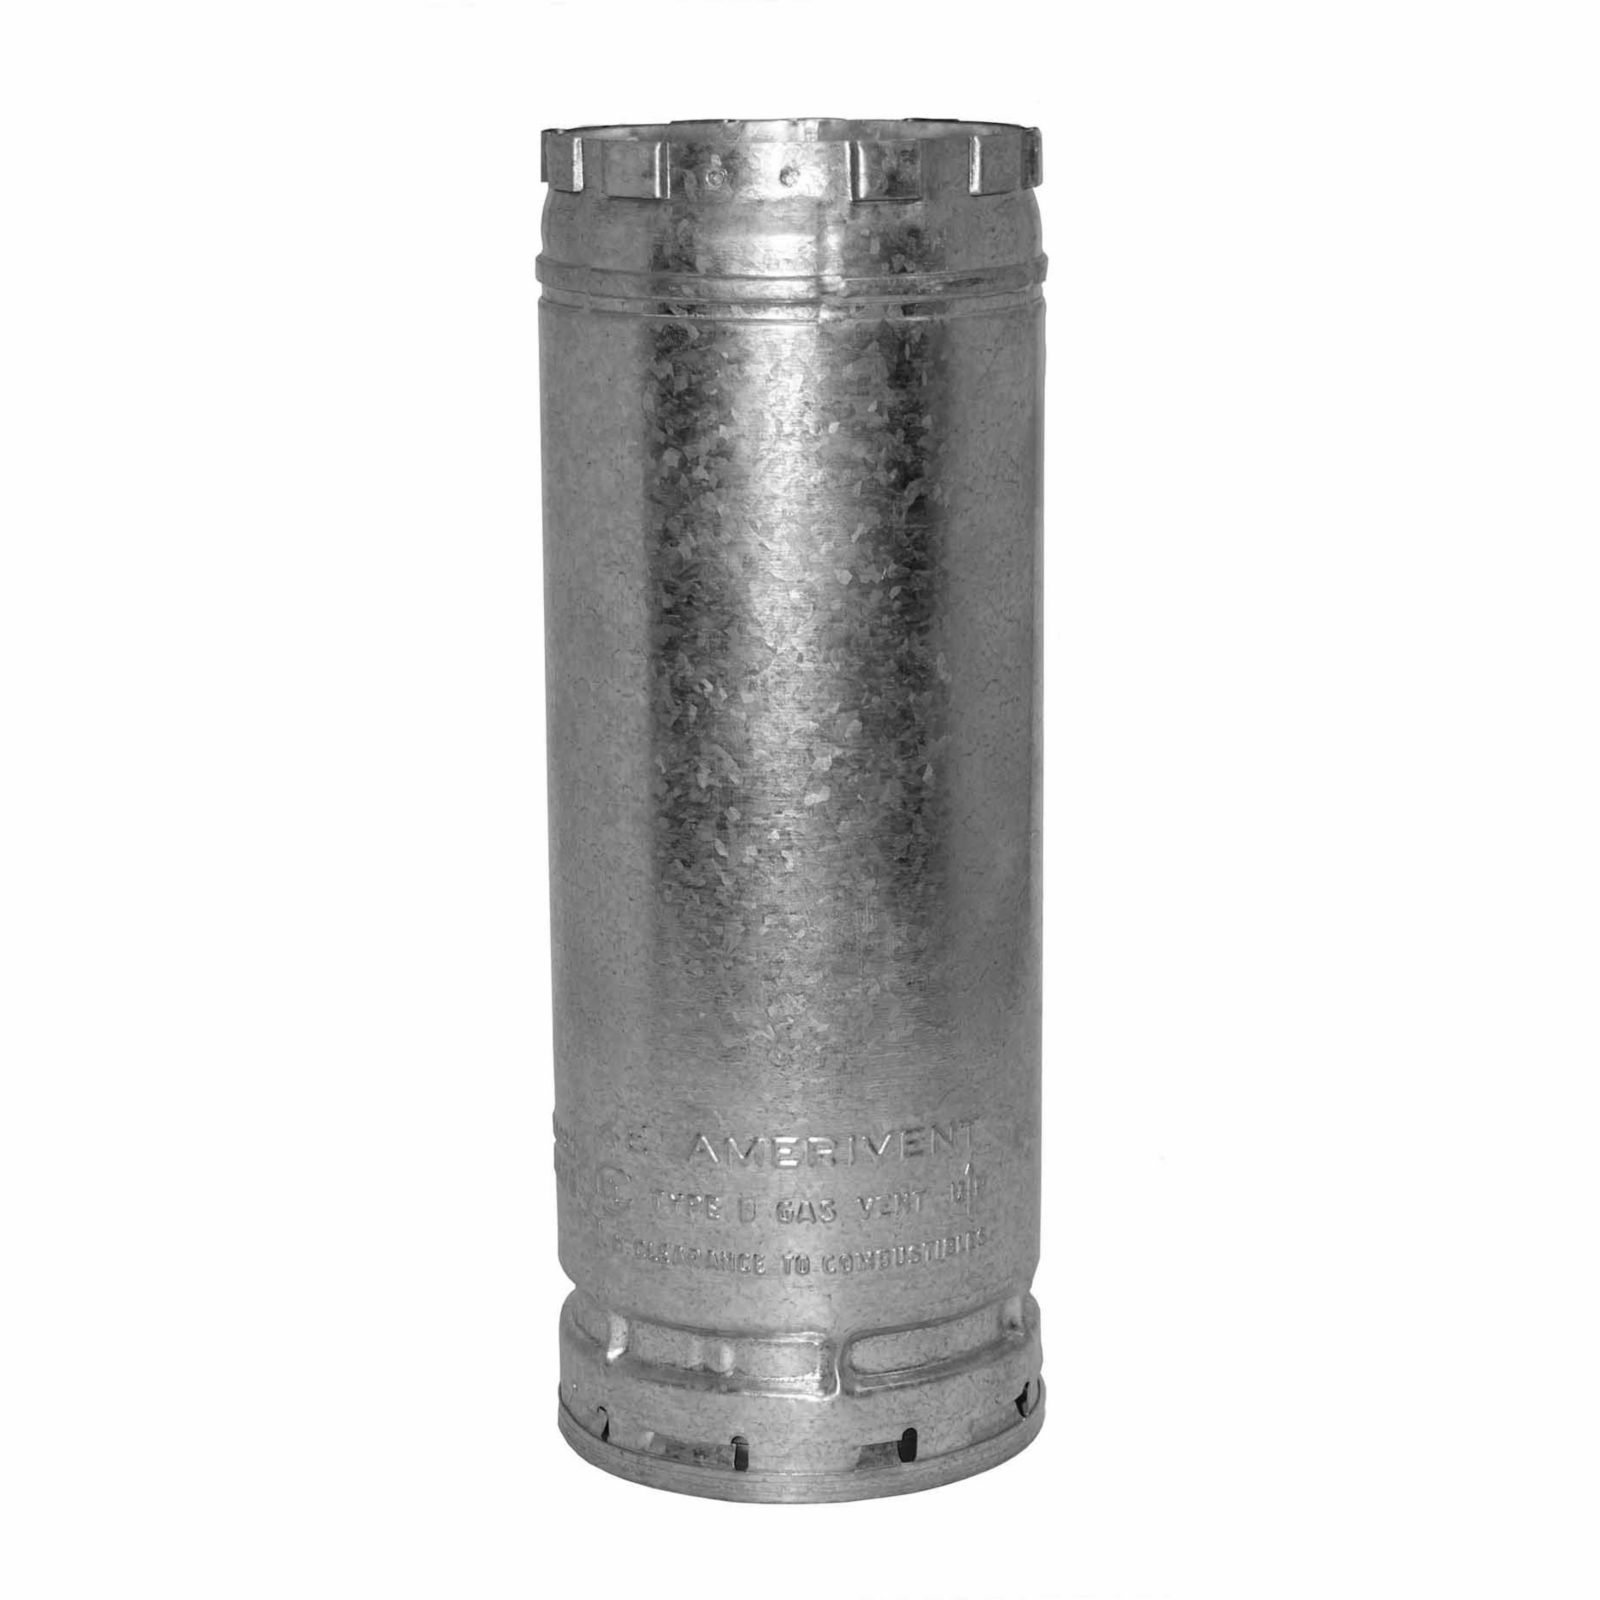 "AmeriVent 4E24 - Pipe Section Type B Gas Vent, 4"" Round X 24"" Length"